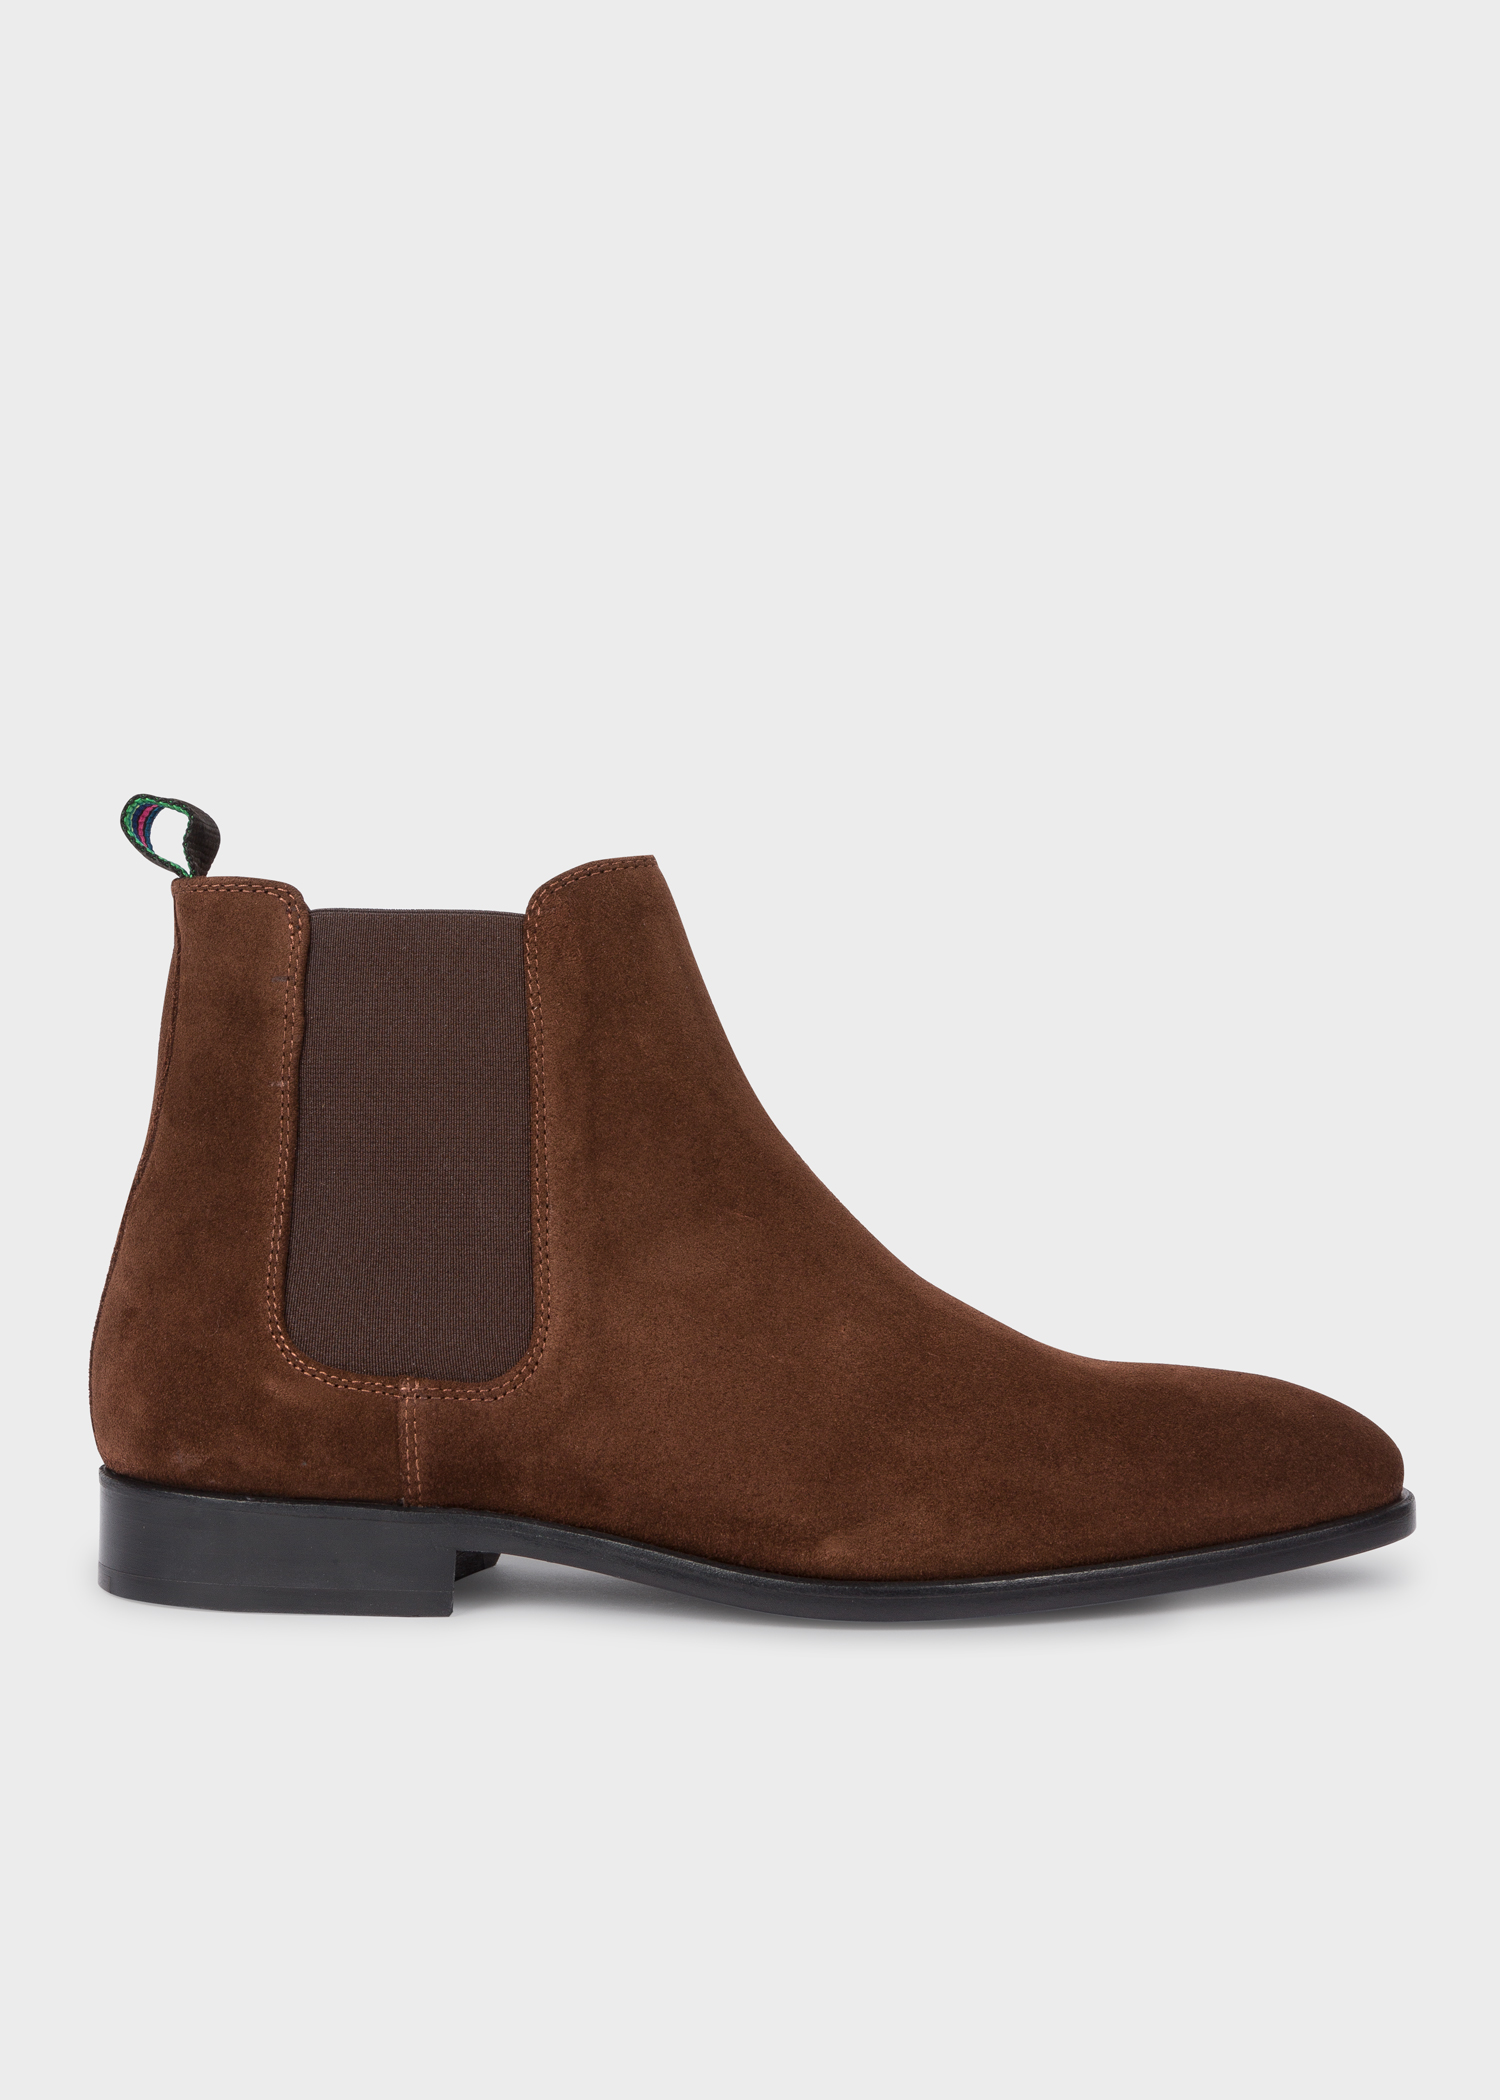 da82e9509f6 Men's Dark Brown Suede 'Gerald' Chelsea Boots